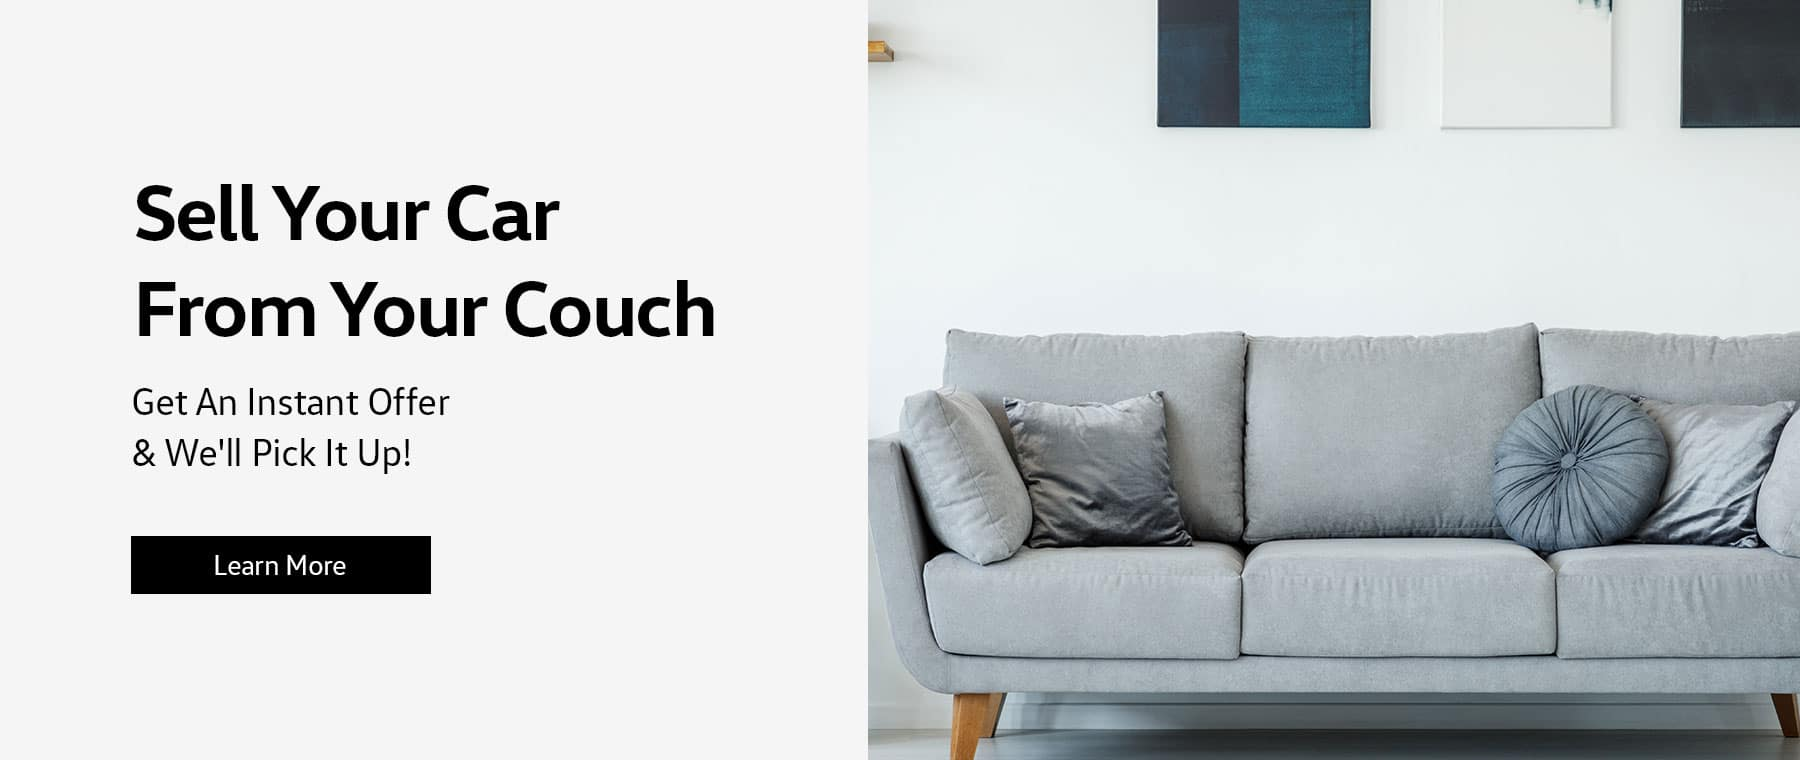 Sell Your Car From Your Couch